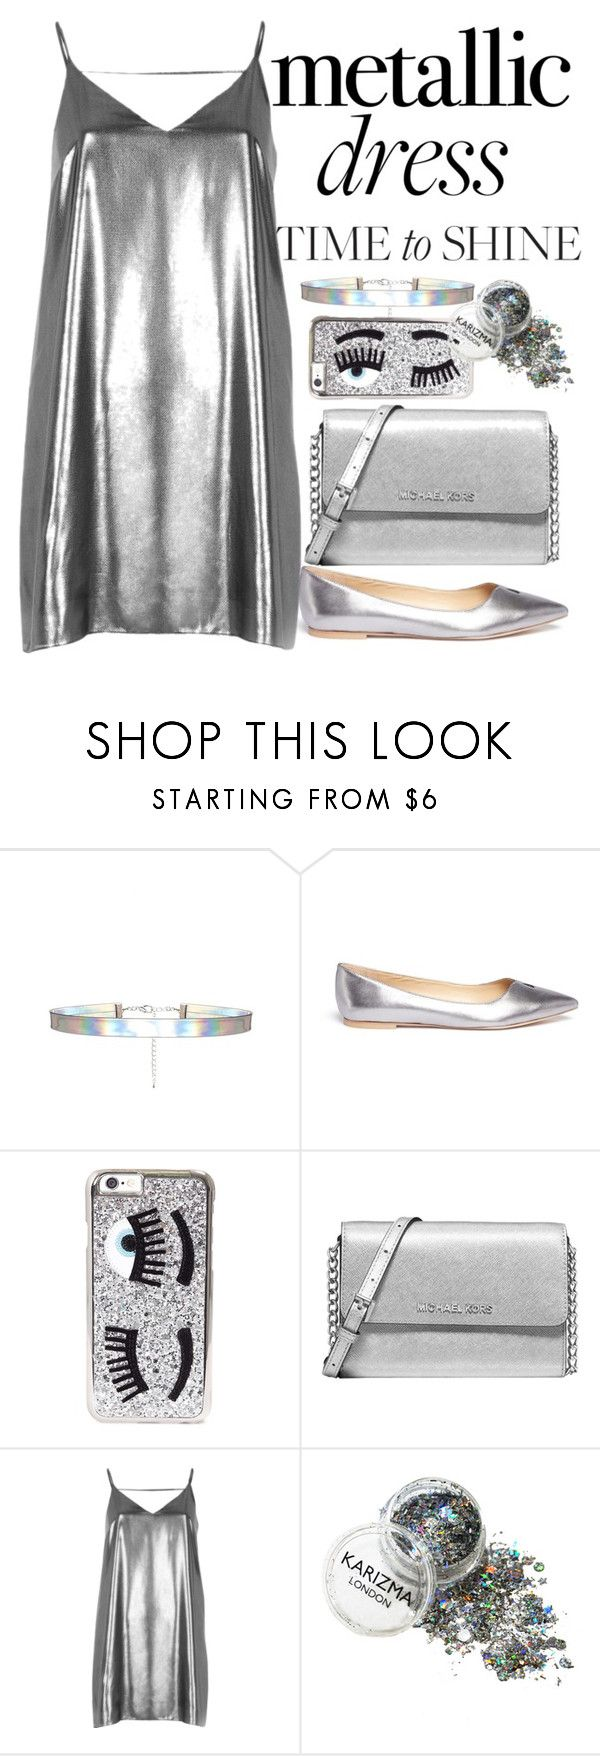 """Metallic dress"" by anna-nedelcheva ❤ liked on Polyvore featuring Sam Edelman, Chiara Ferragni, Michael Kors and River Island"